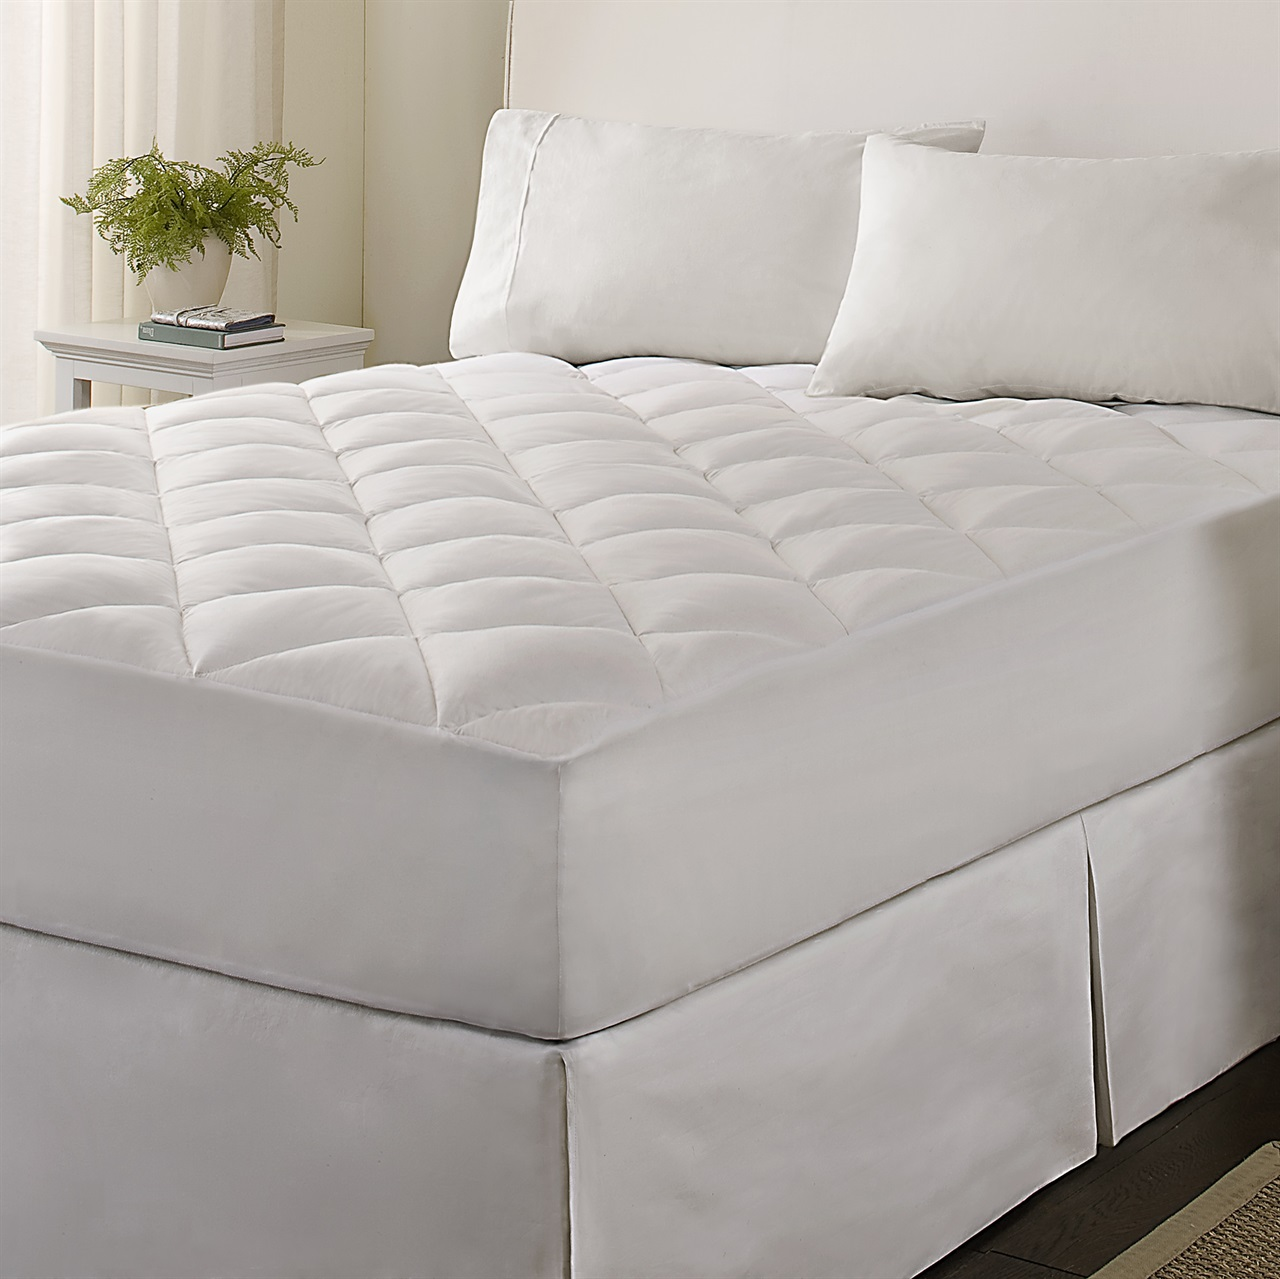 Memory Foam Beds King Size Best Inexpensive King Size Mattress Kings Size Mattress Sizi Buy